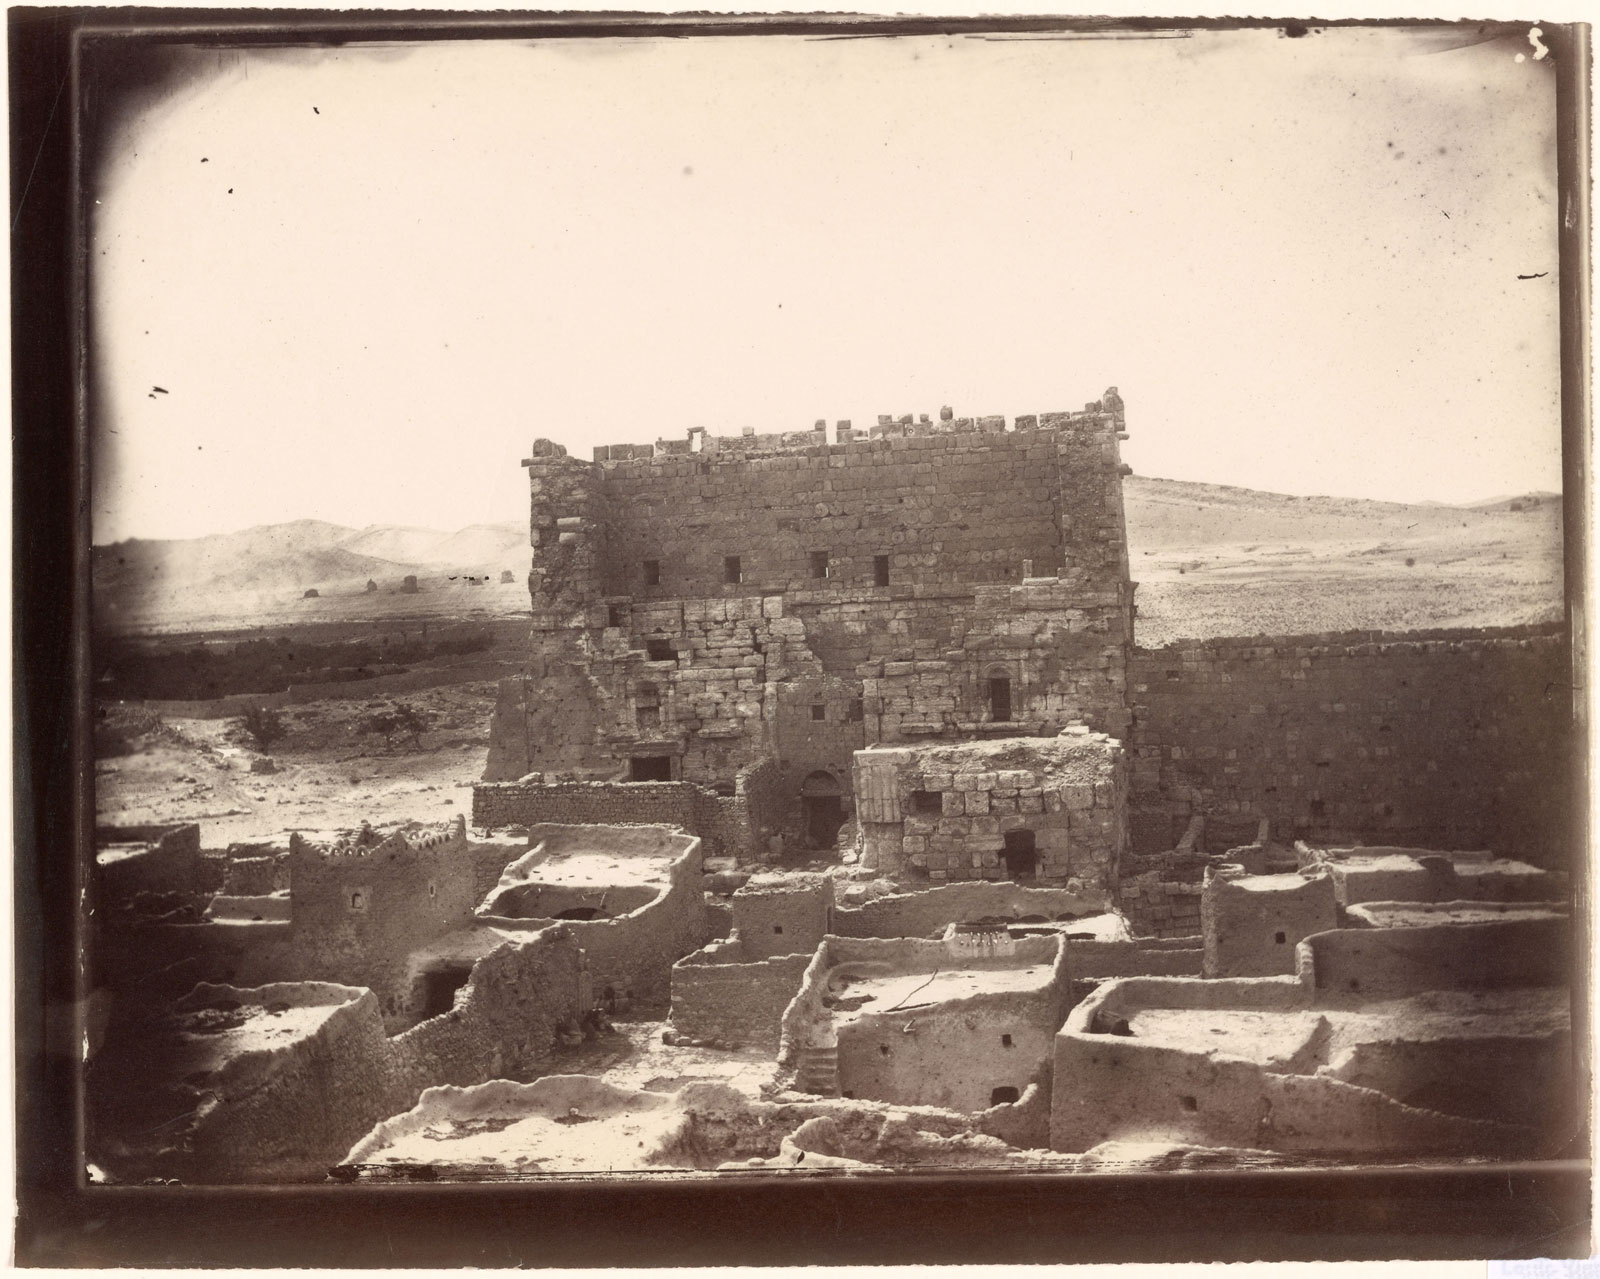 The gate of the courtyard of the Temple of Bel, Palmyra, photographed by Louis Vines, 1864